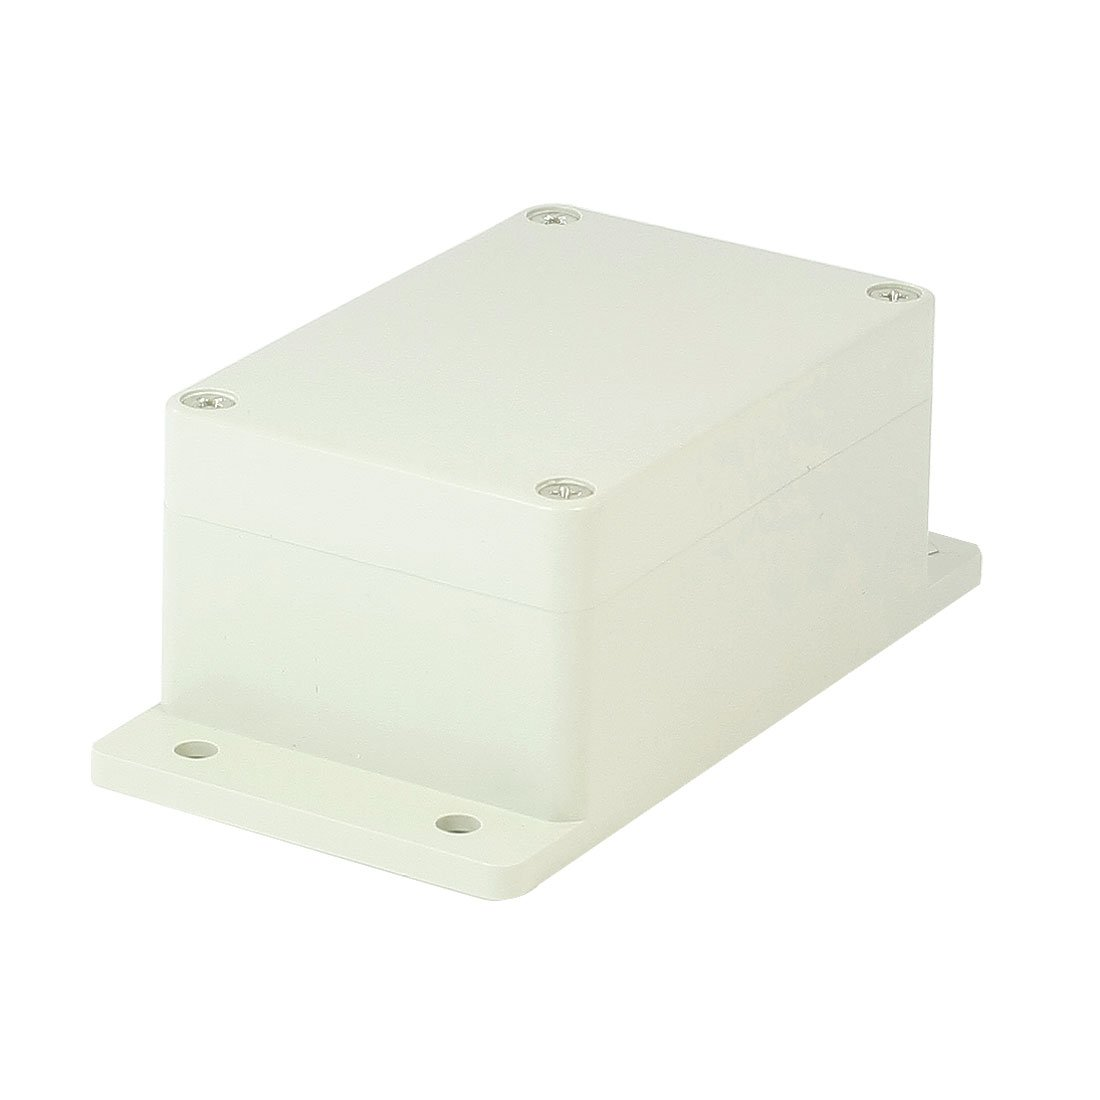 IMC Hot Waterproof Plastic Enclosure Case DIY Junction Box слипоны grand style grand style gr025awwok27